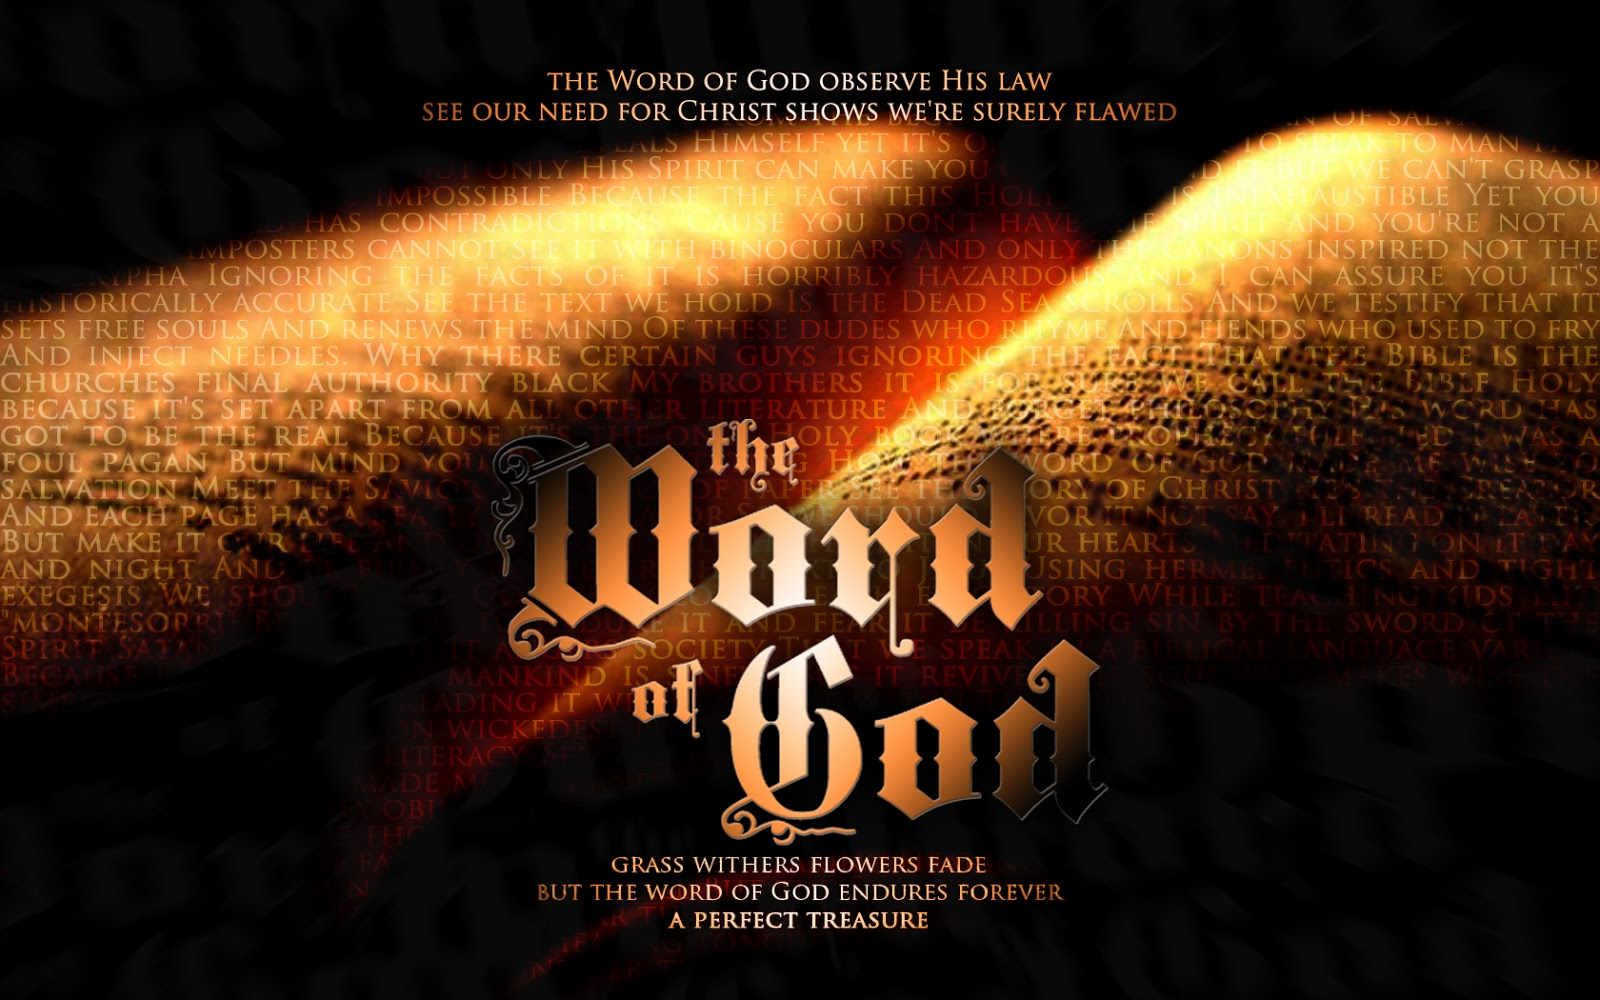 word of god For the word of god is quick, and powerful, and sharper than any twoedged sword, piercing even to the dividing asunder of soul and spirit, and of the joints and marrow, and is a discerner of the thoughts and intents of the heart.